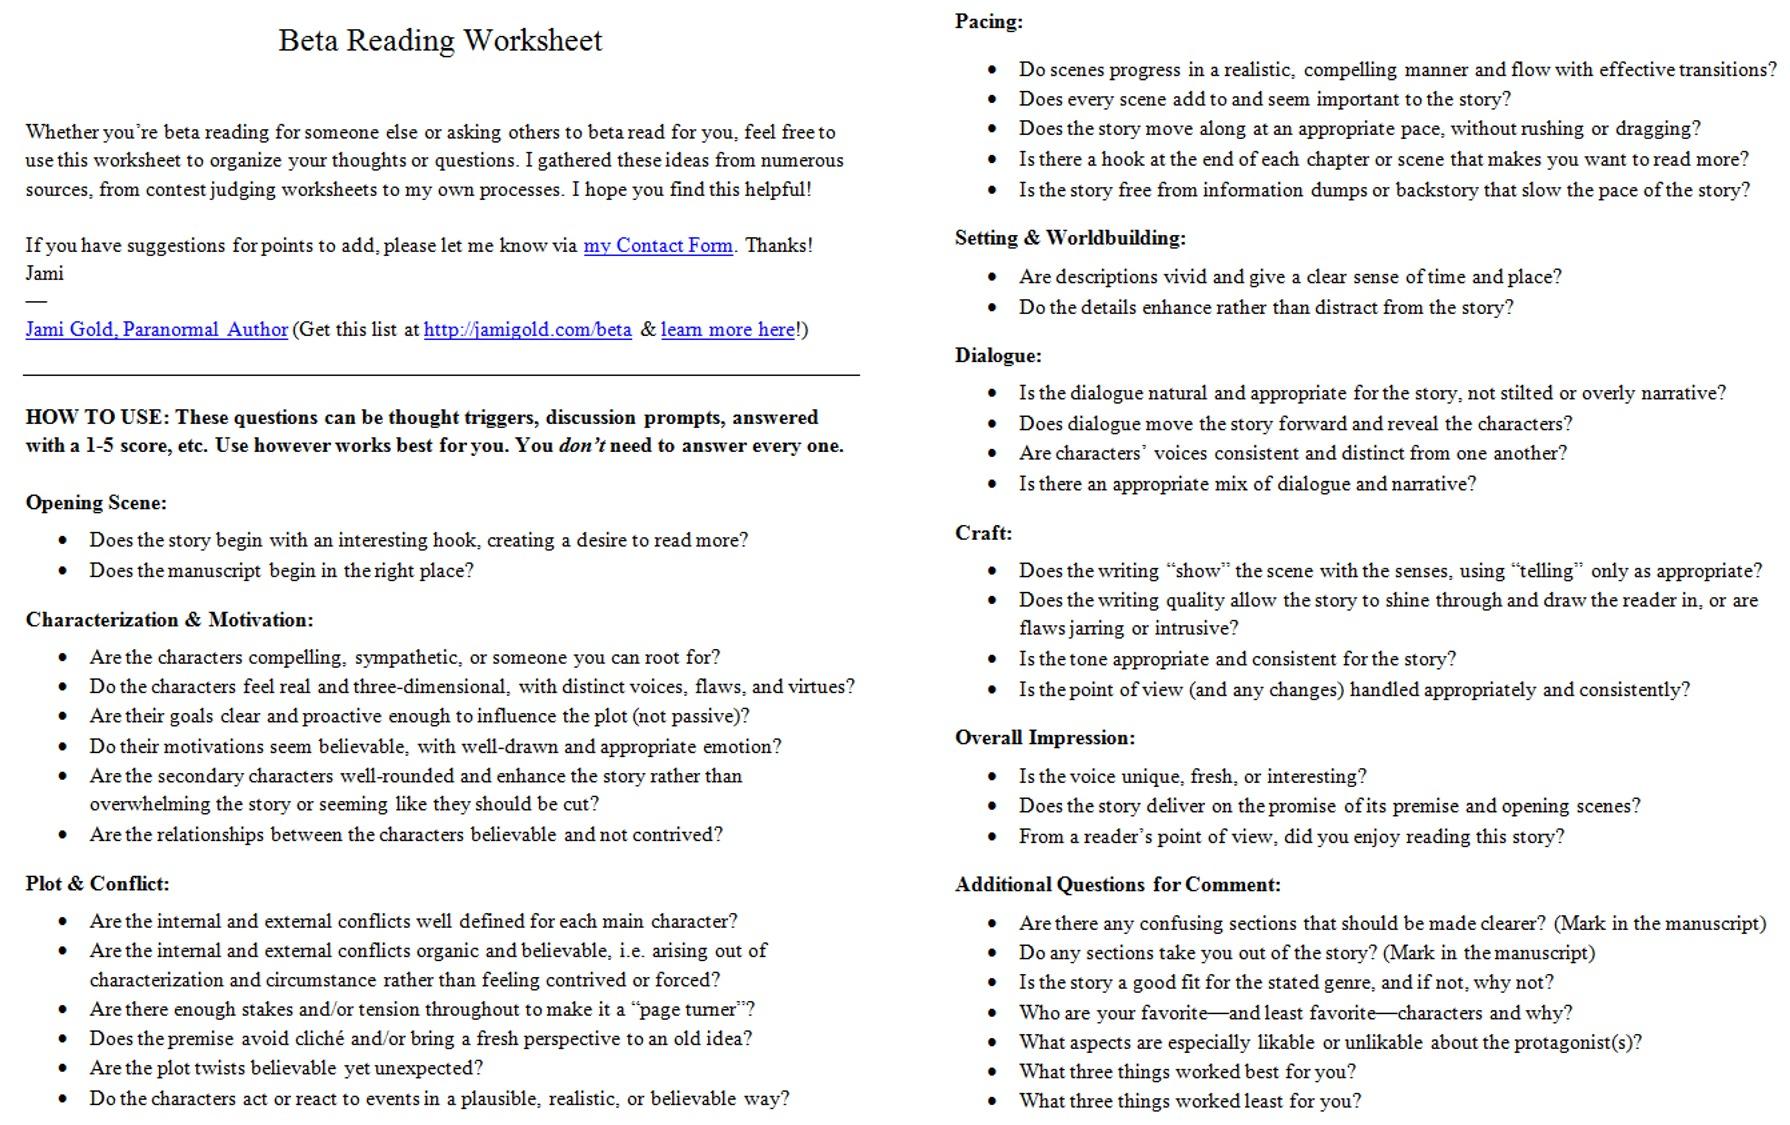 Weirdmailus  Prepossessing Worksheets For Writers  Jami Gold Paranormal Author With Handsome Screen Shot Of The Twopage Beta Reading Worksheet With Awesome Worksheet Format Also Math Worksheets For Kindergarten Printable In Addition Create A Line Plot Worksheet And Easter Comprehension Worksheets As Well As Third Grade Math Worksheets Word Problems Additionally First Grade Practice Worksheets From Jamigoldcom With Weirdmailus  Handsome Worksheets For Writers  Jami Gold Paranormal Author With Awesome Screen Shot Of The Twopage Beta Reading Worksheet And Prepossessing Worksheet Format Also Math Worksheets For Kindergarten Printable In Addition Create A Line Plot Worksheet From Jamigoldcom